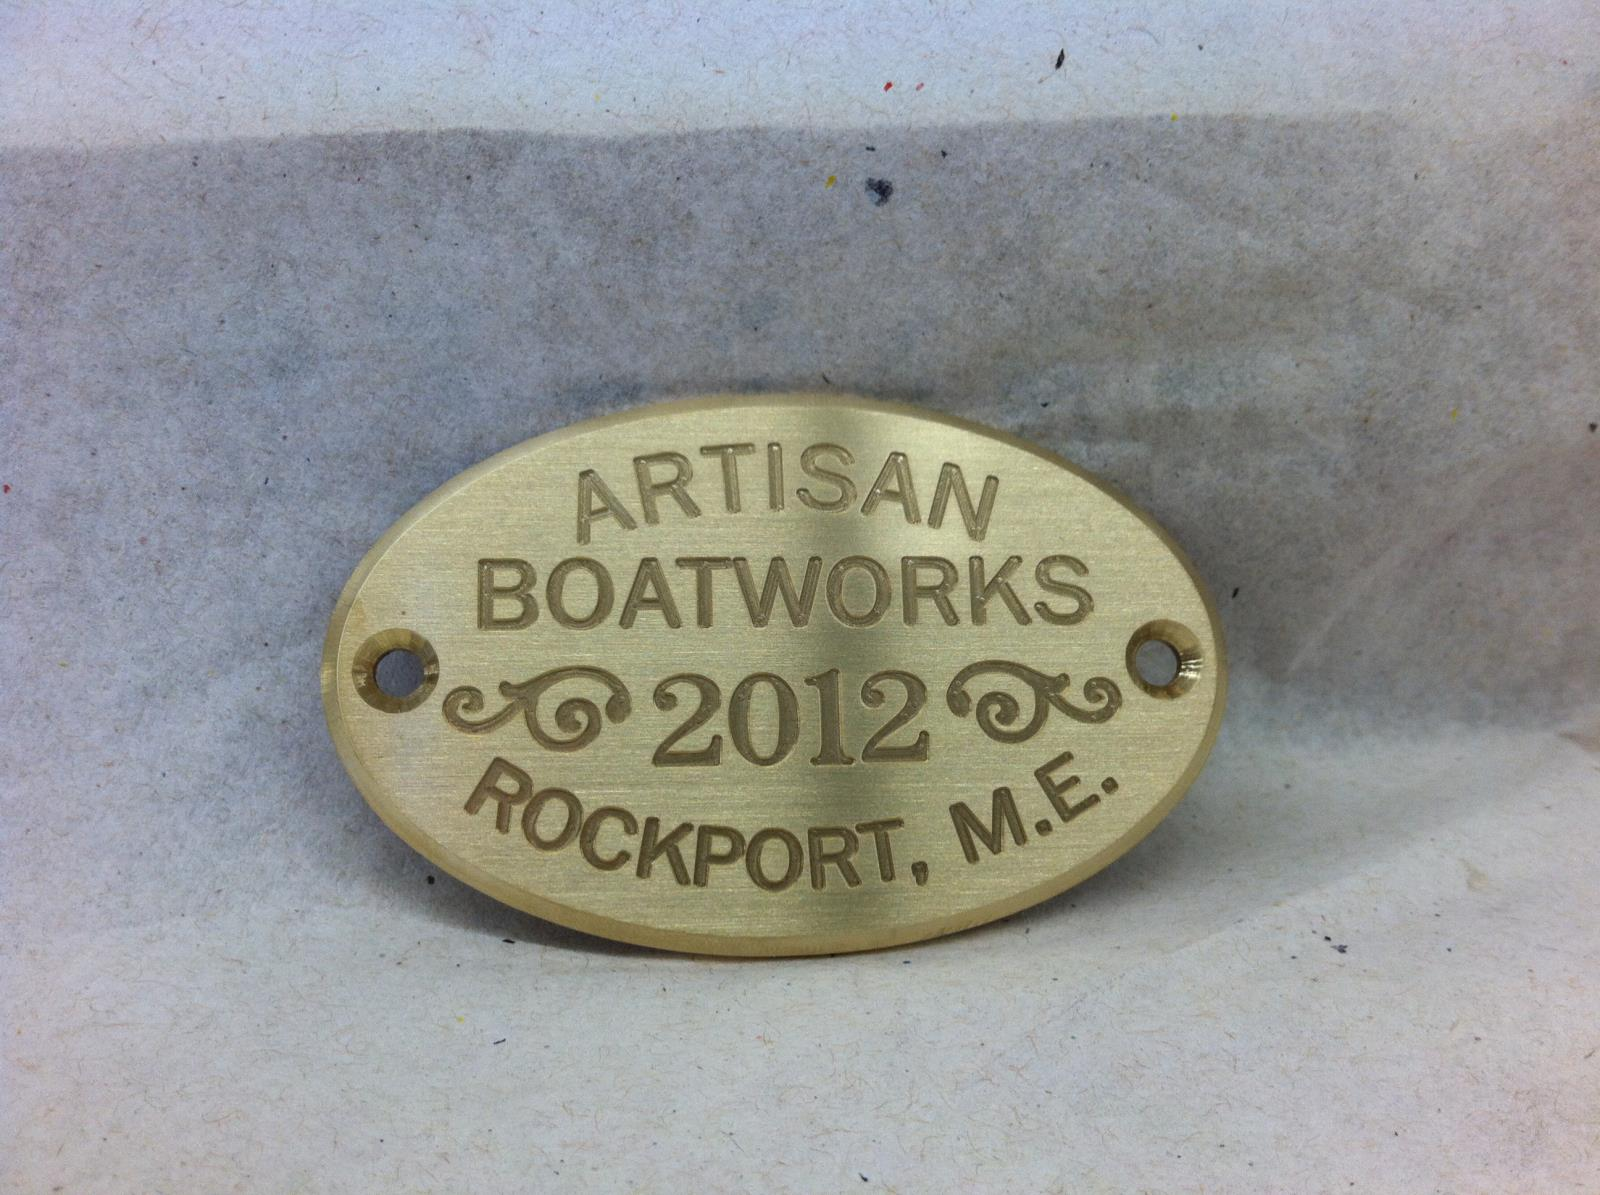 Artisan_Boatworks.JPG